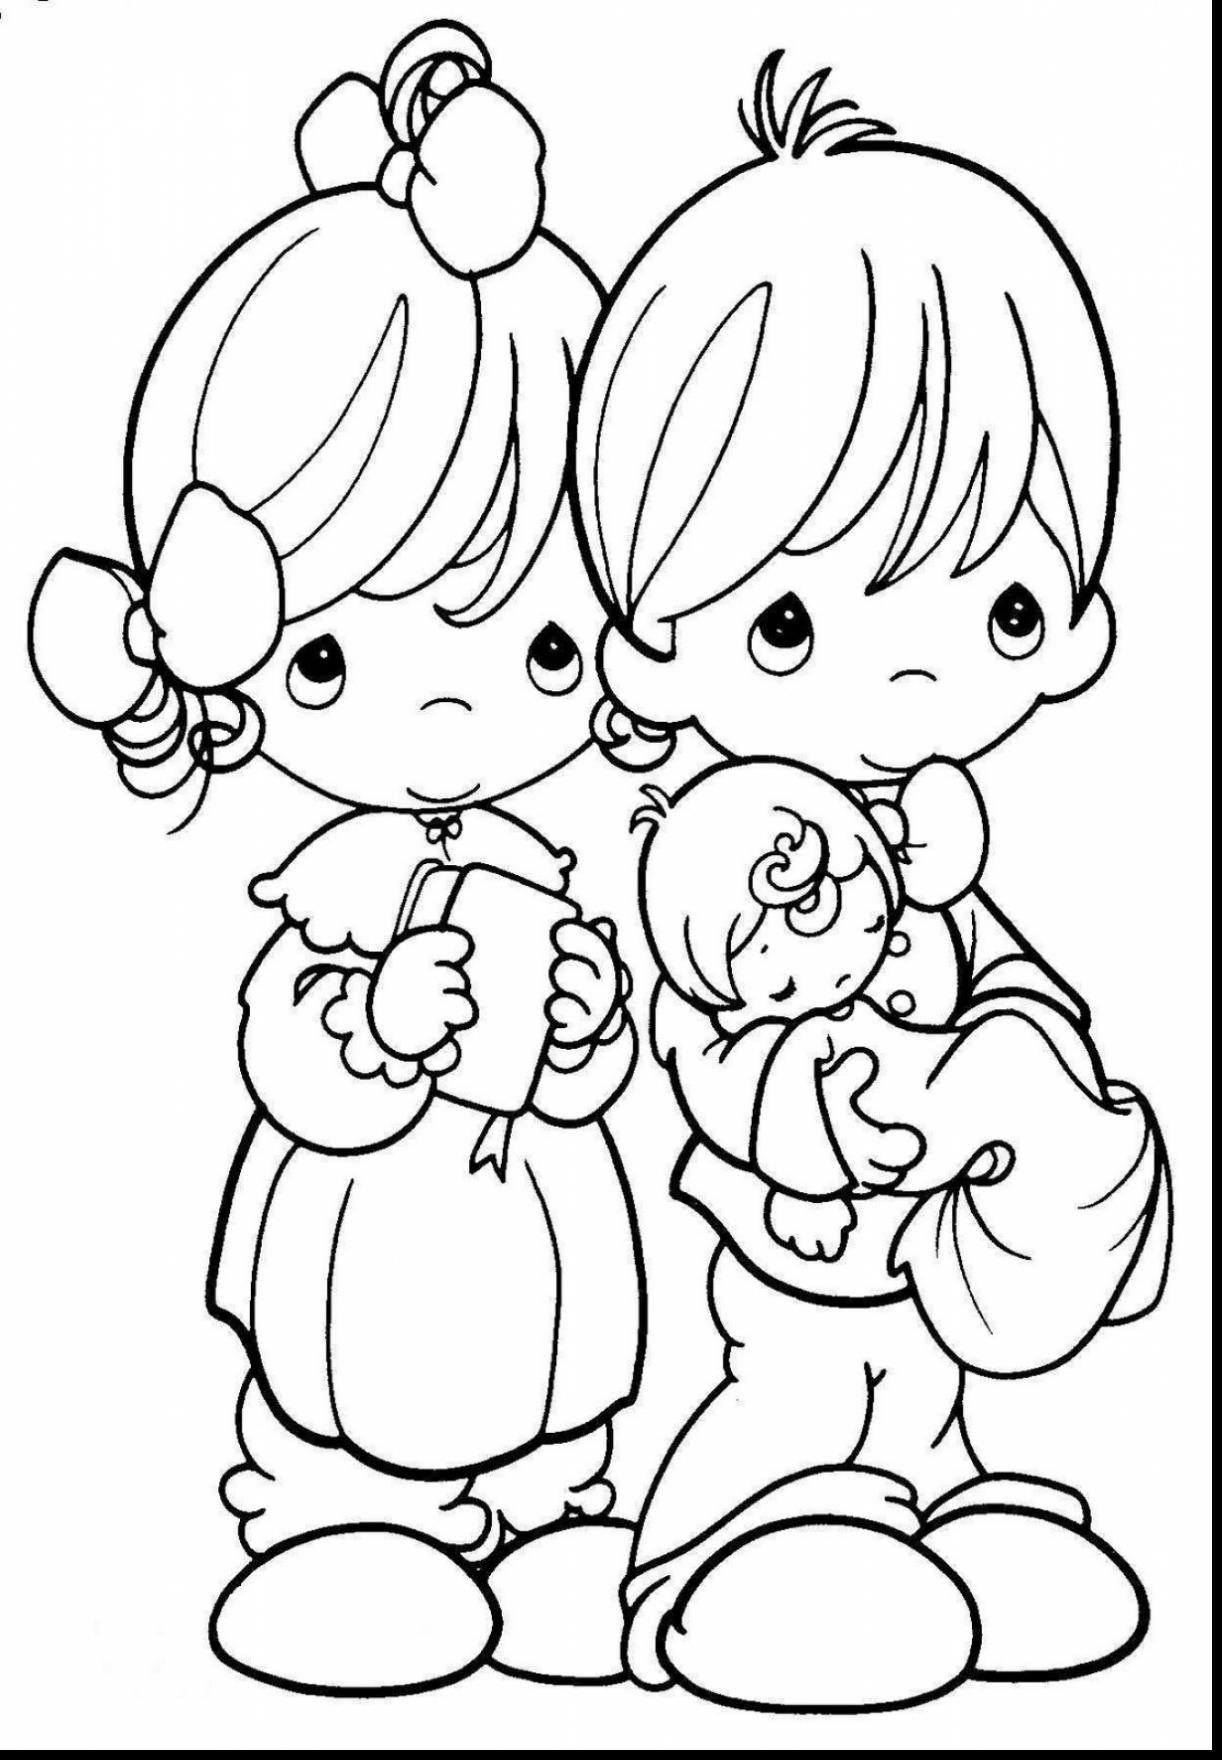 Image Result For Precious Moments Family Coloring Pages Precious Moments Coloring Pages Love Coloring Pages Coloring Pages